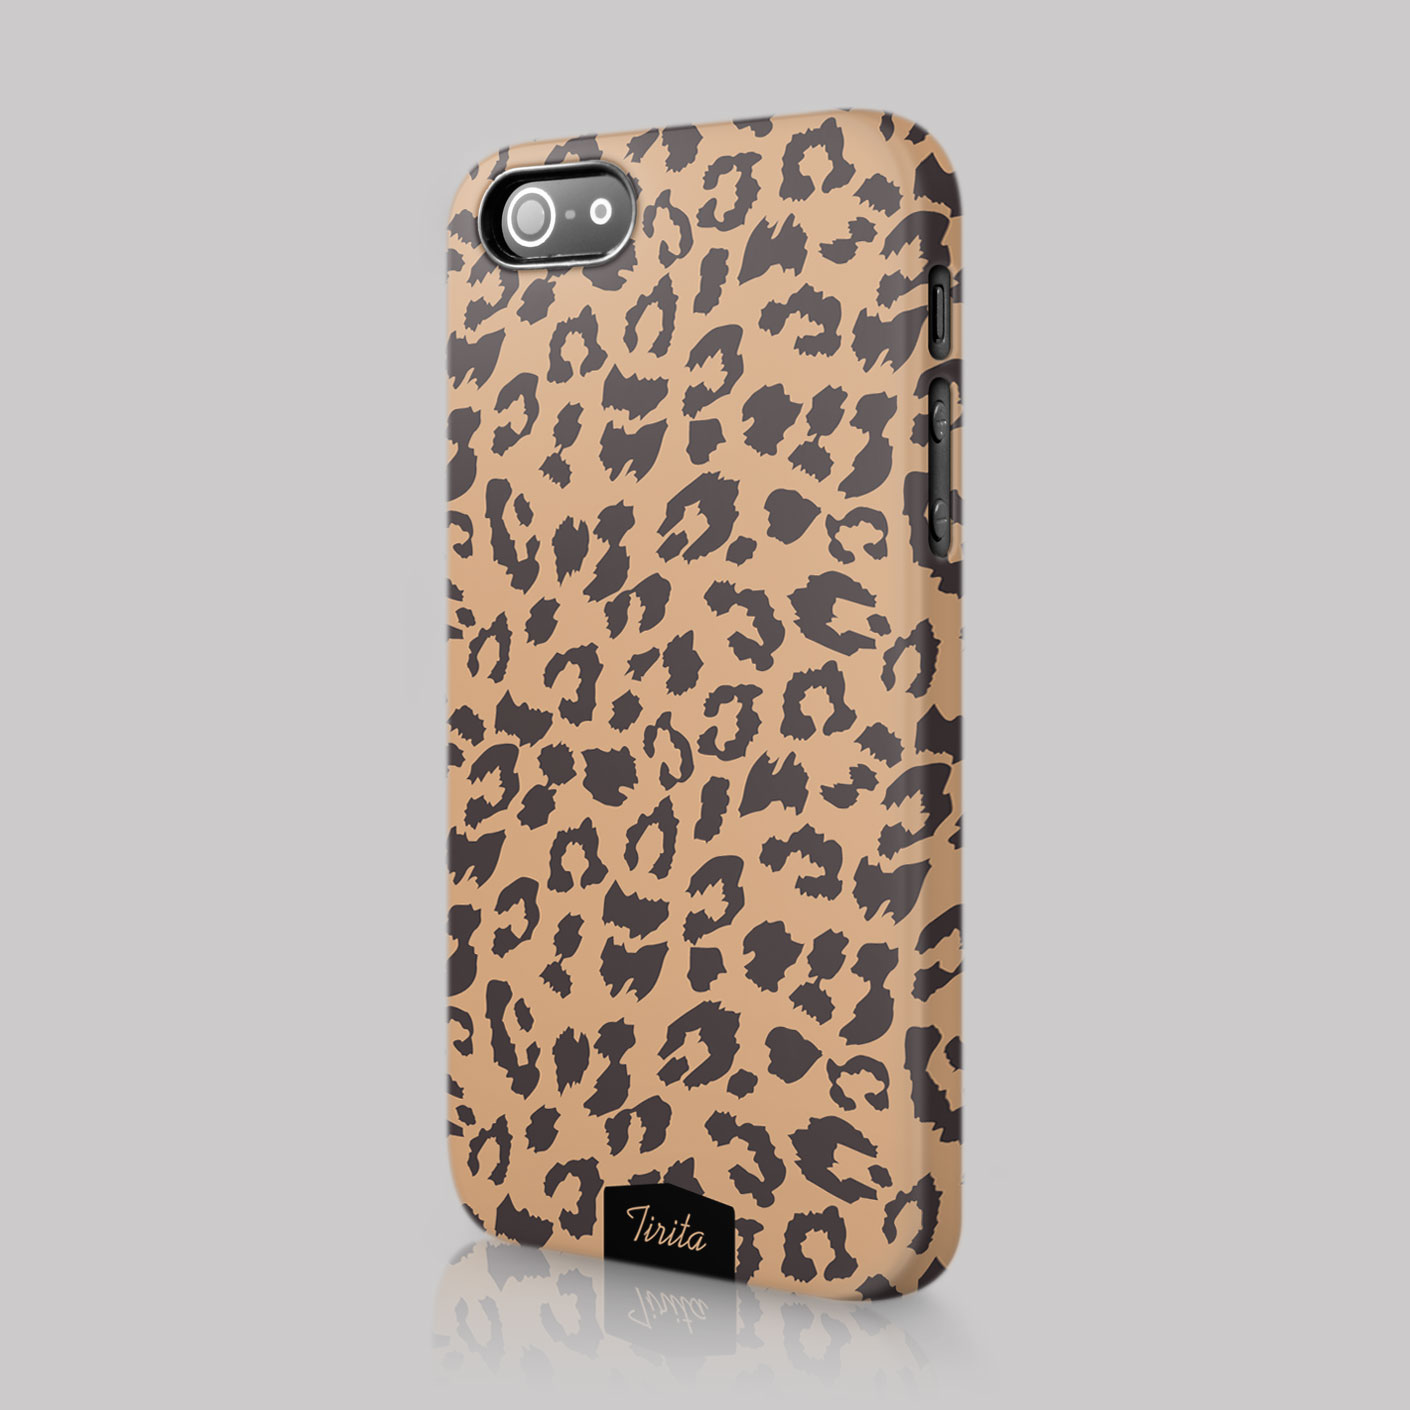 Like iPhone 7 Leopard Cases? Personalize your own favours with Leopard or shop for iPhone 7 Leopard Cases at Casetify. Pick the one your love. Free Shipping Worldwide. iPhone 7 Case Retro Funky Leopard Print with Color Blocks and Stripes - Snap Case $ Love. Make Your iPhone 7 Case. More Sizes. Limited Edition.